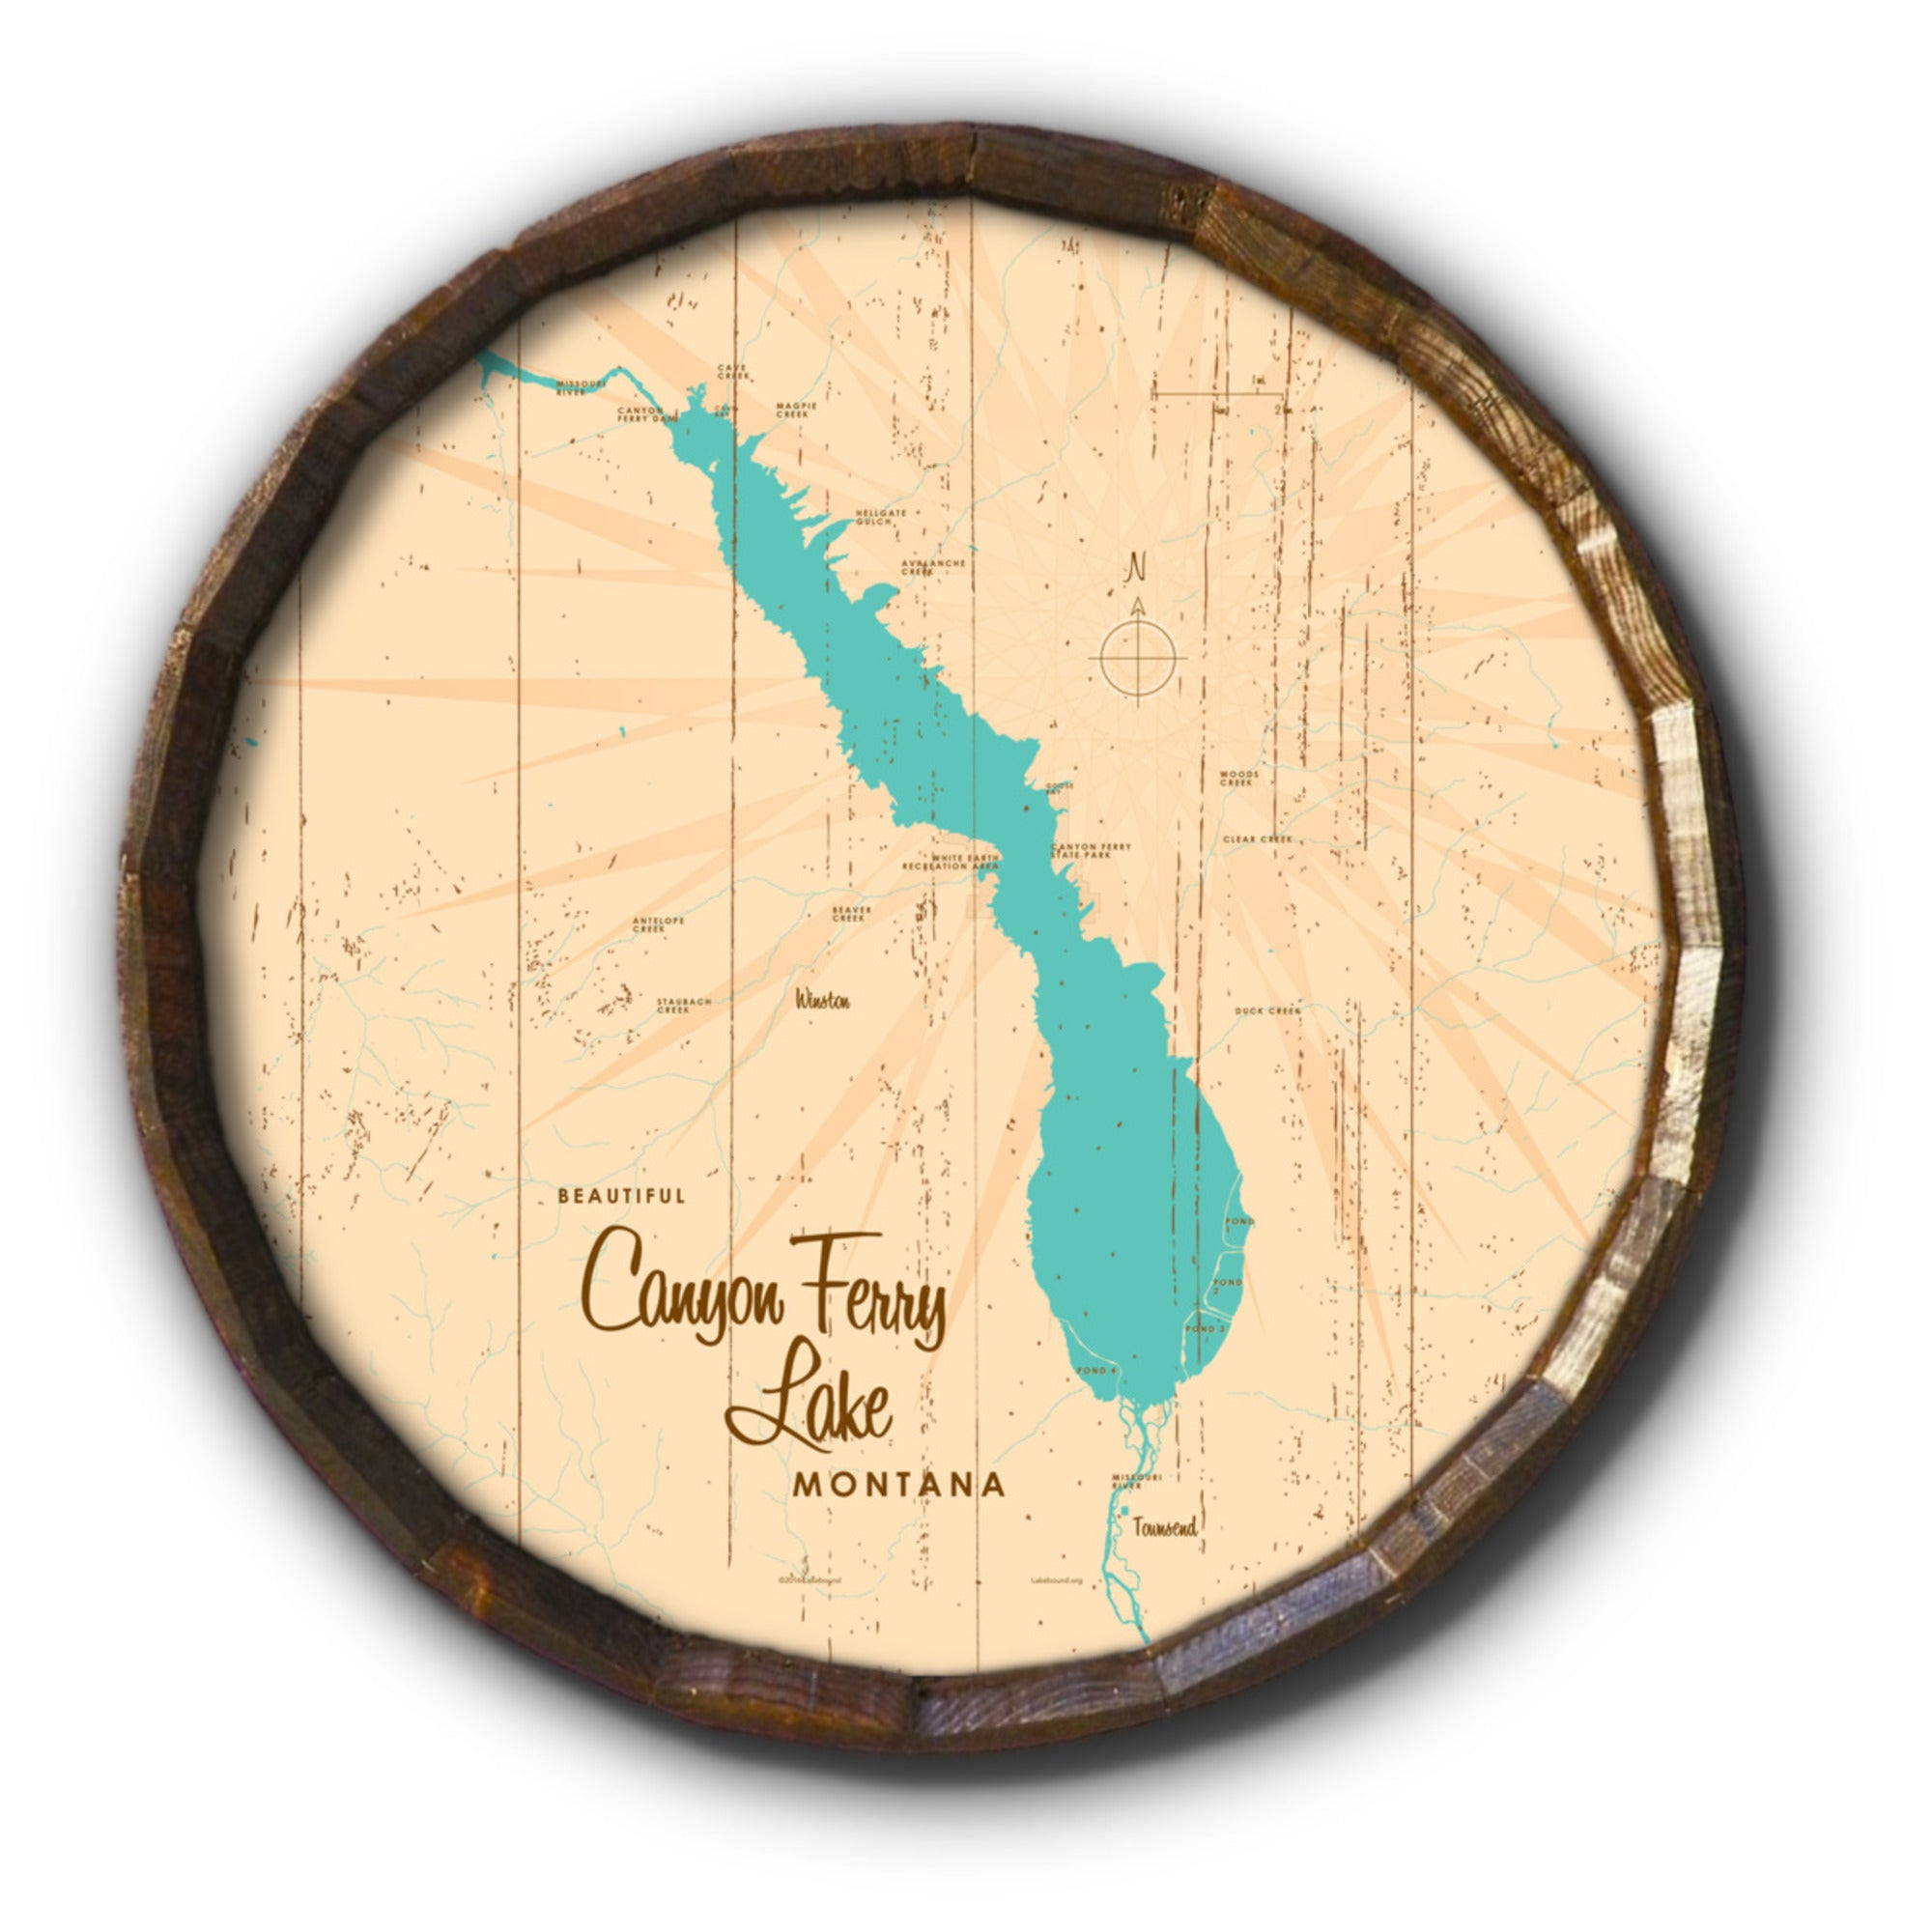 Canyon Ferry Lake Montana, Rustic Barrel End Map Art